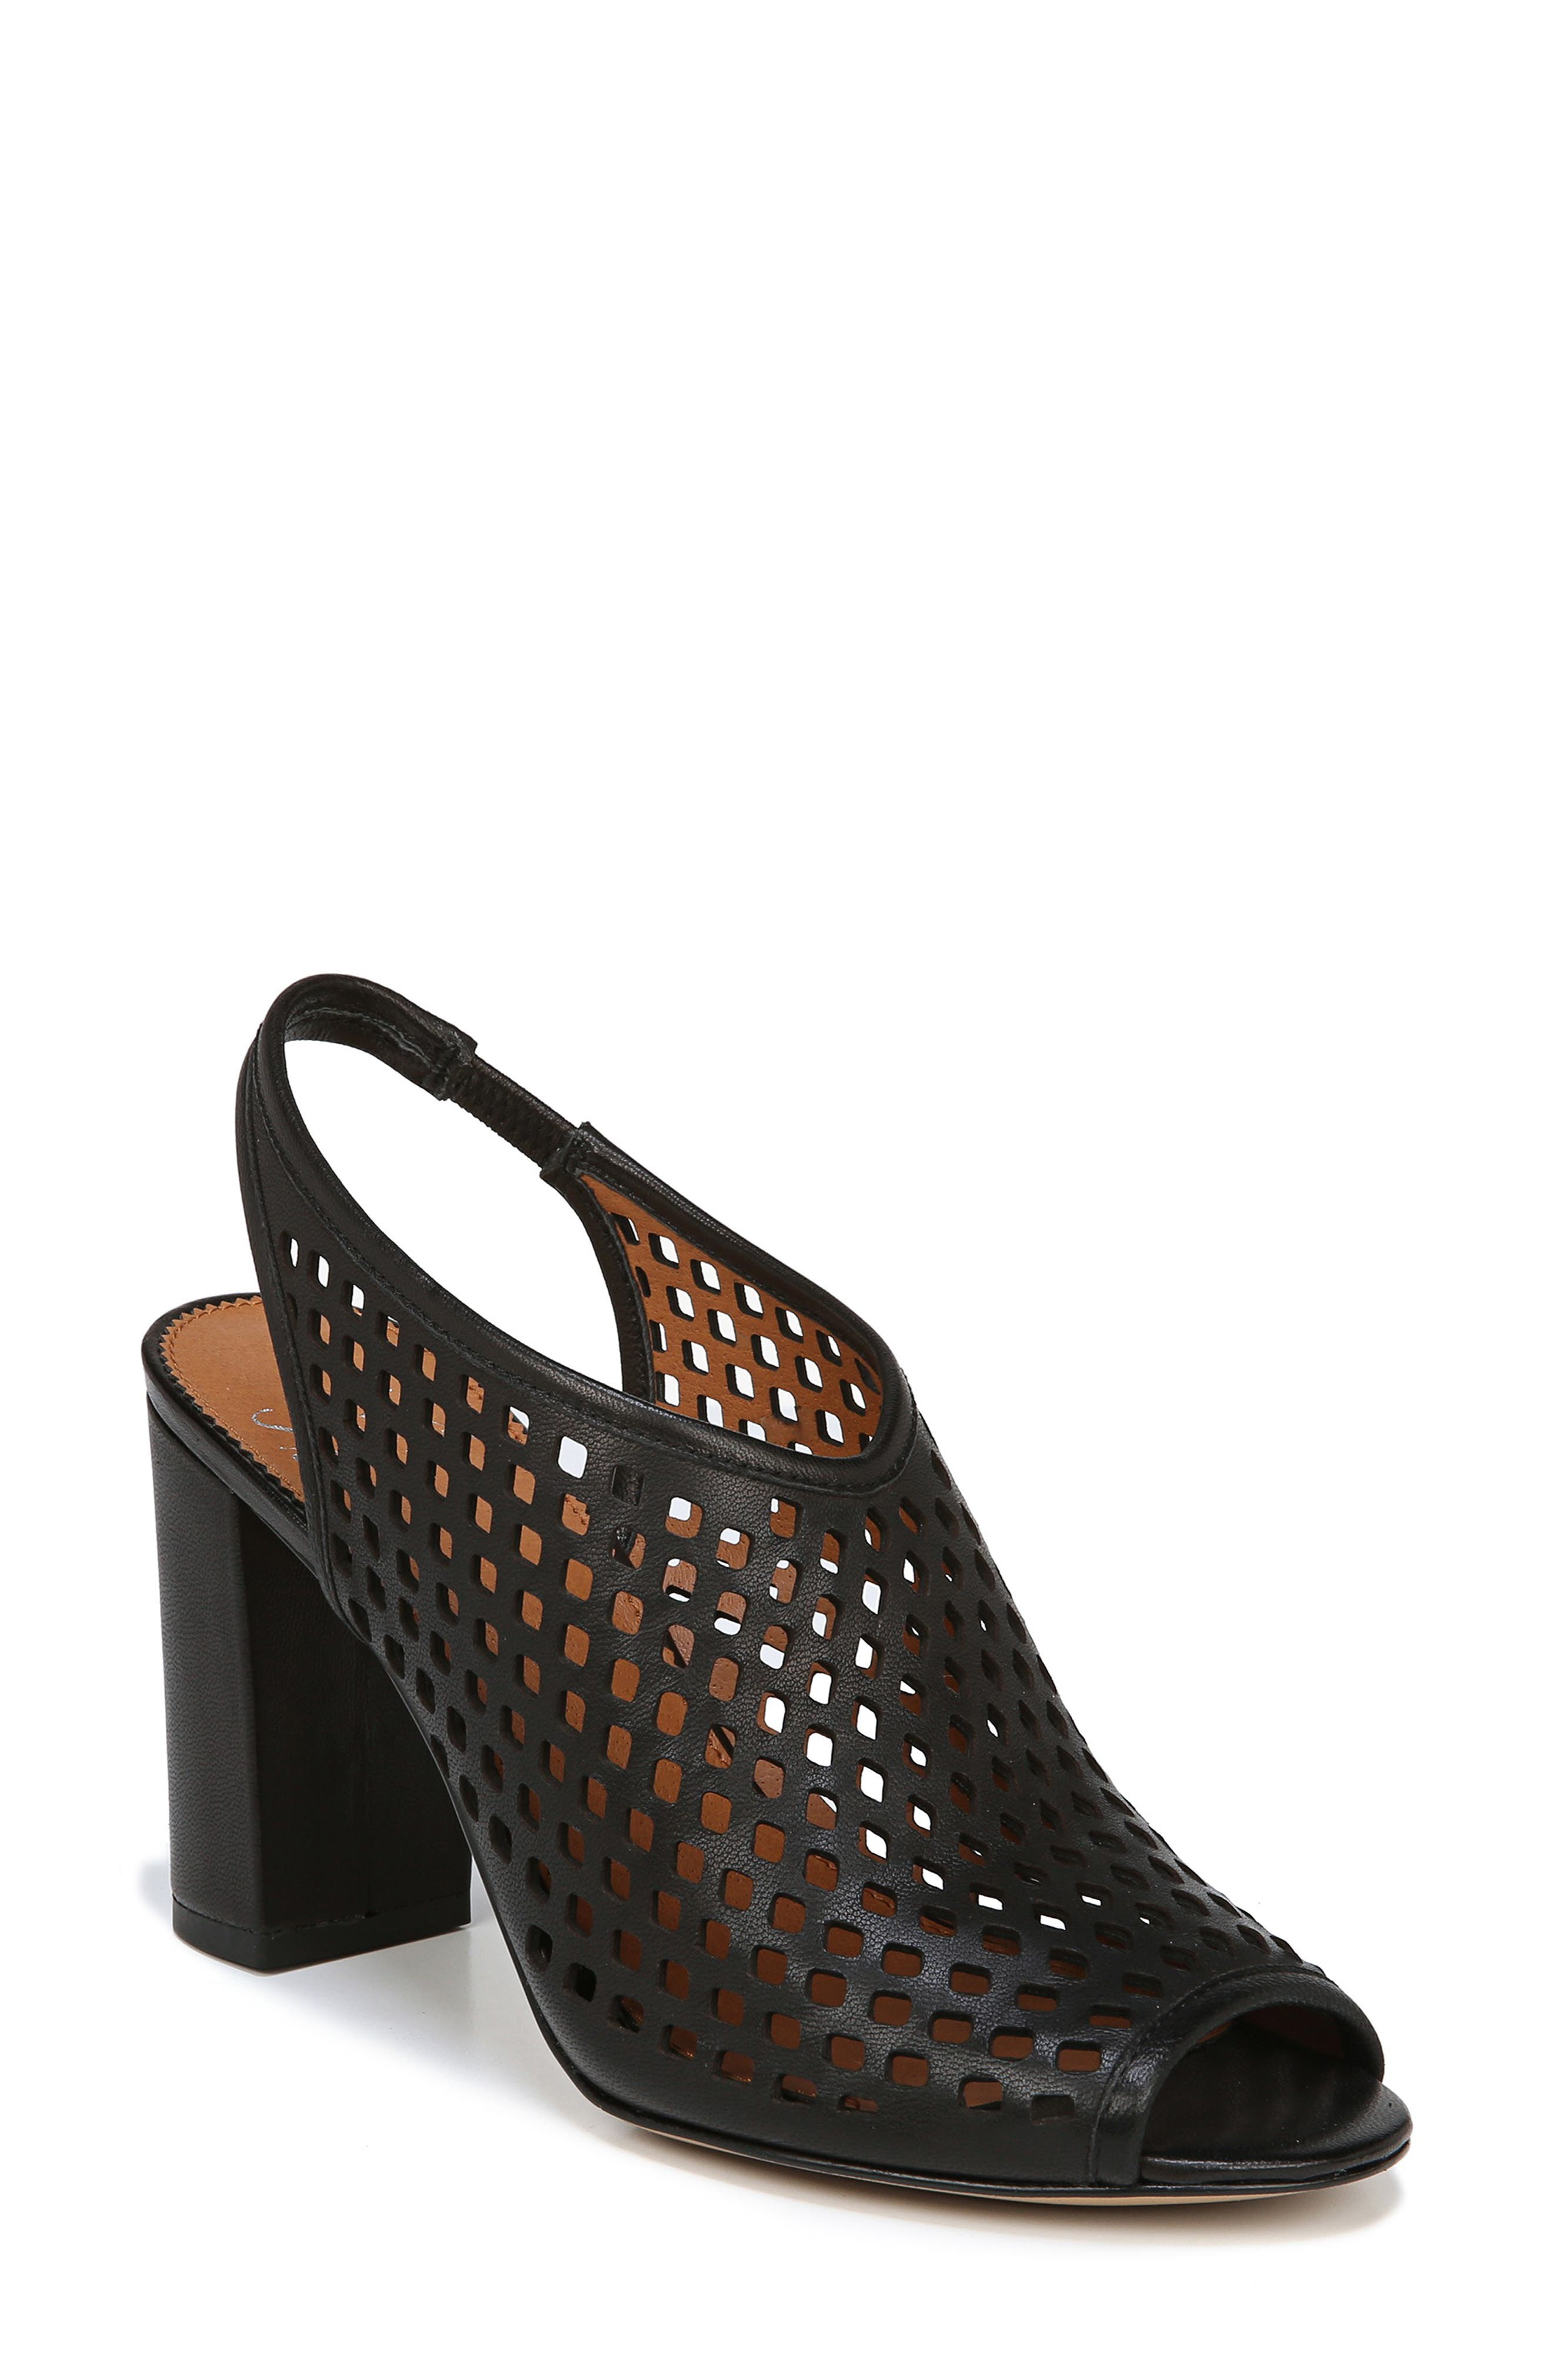 Osbourne Perforated Slingback Sandal,                             Main thumbnail 1, color,                             BLACK LEATHER